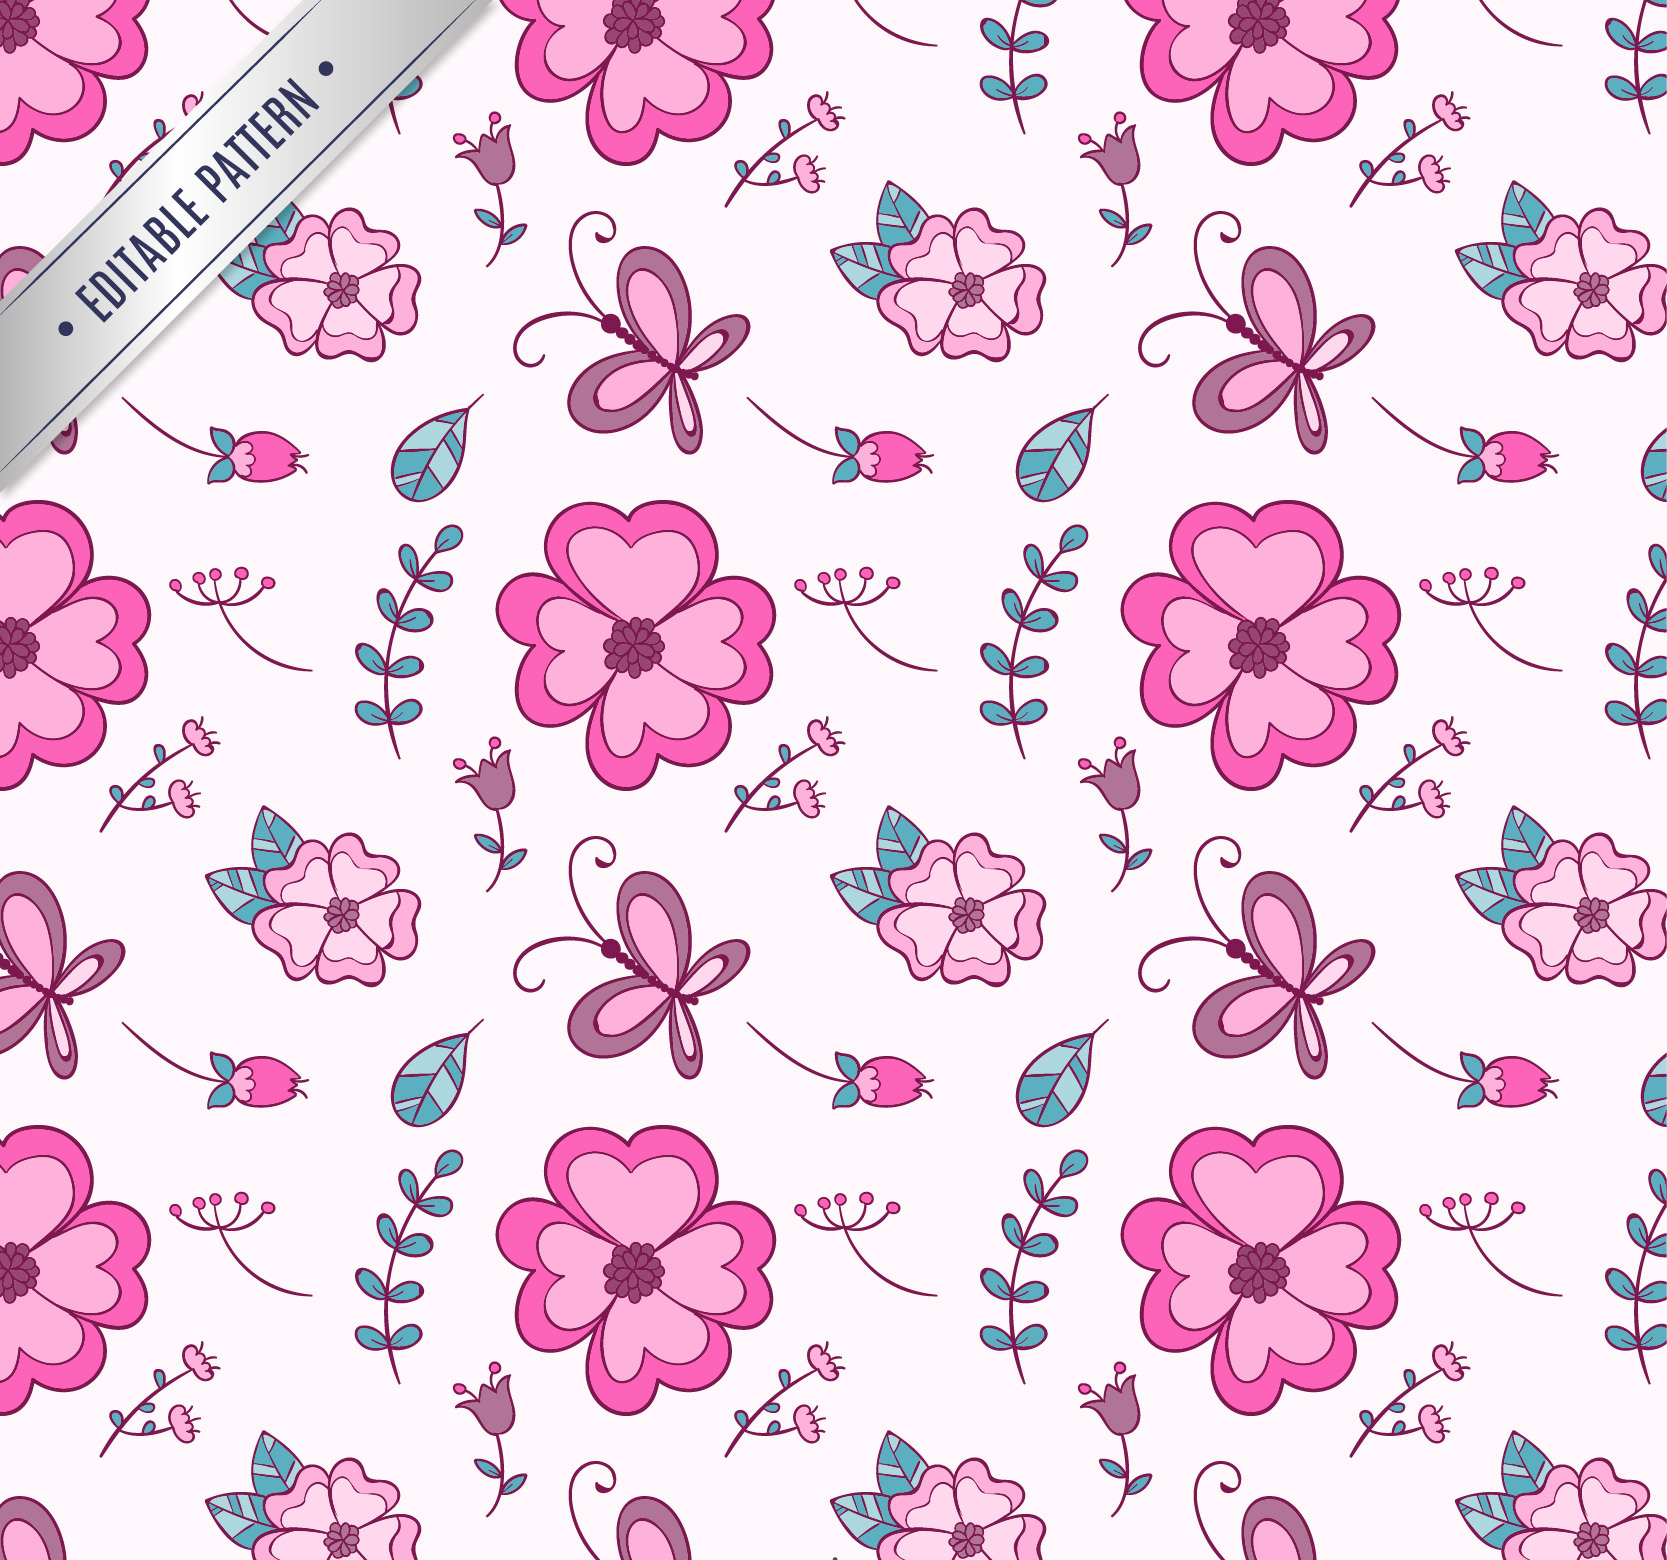 Hand Drawn Seamless Free Flowers and Butterflies Pattern